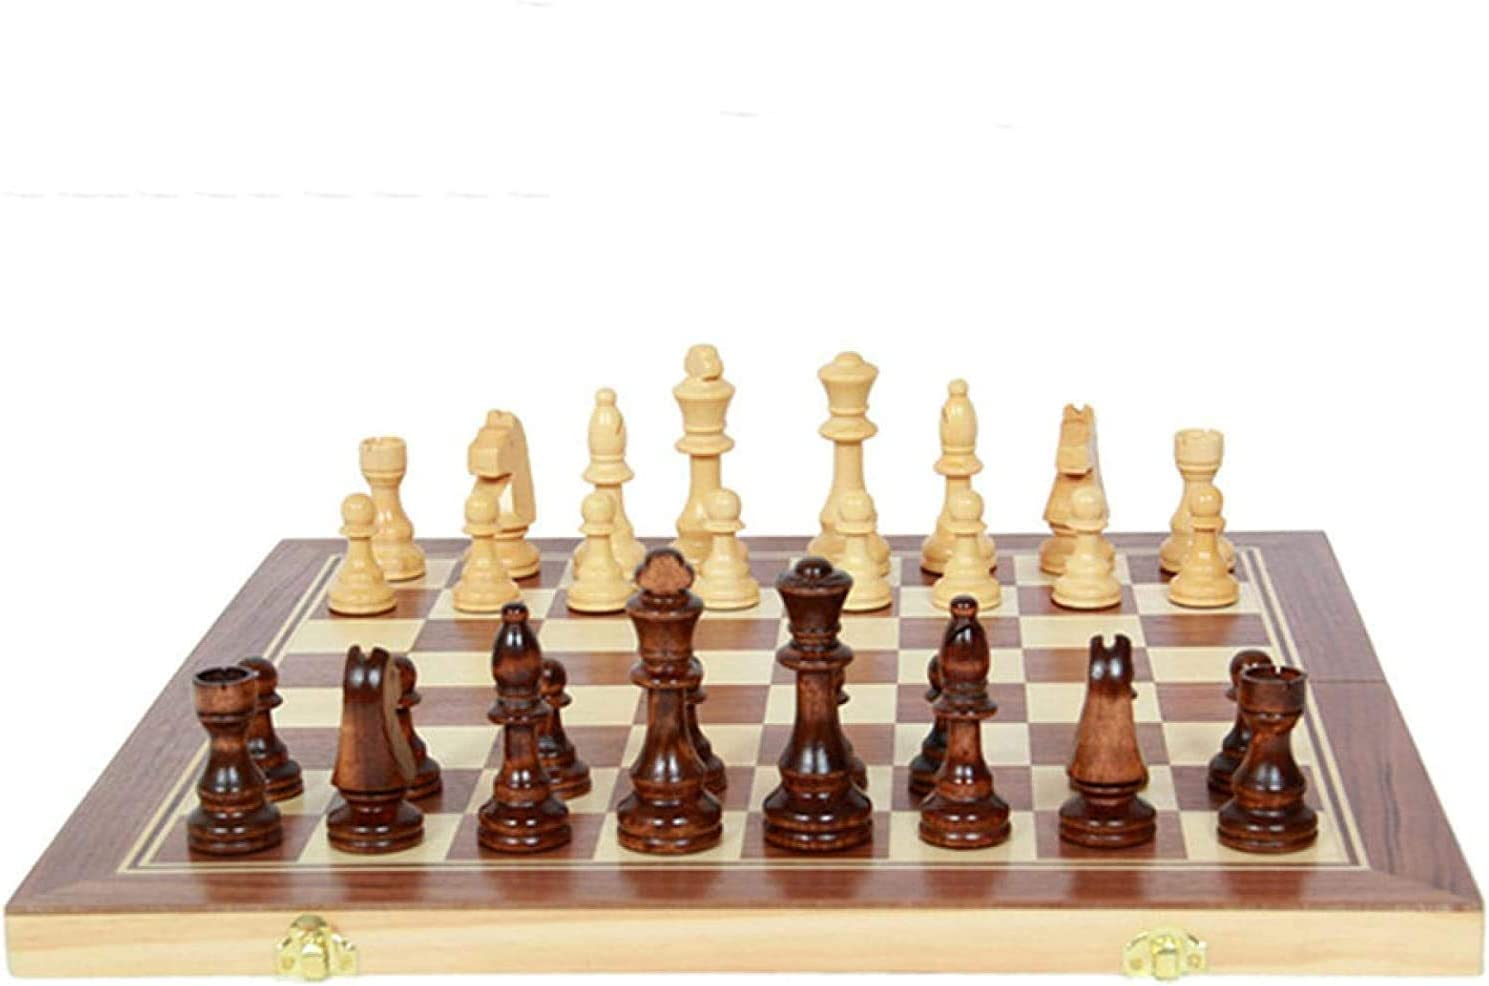 ZHZHUANG Sales Chess Set, Board Set,Wood 2021new shipping free Set Game of I